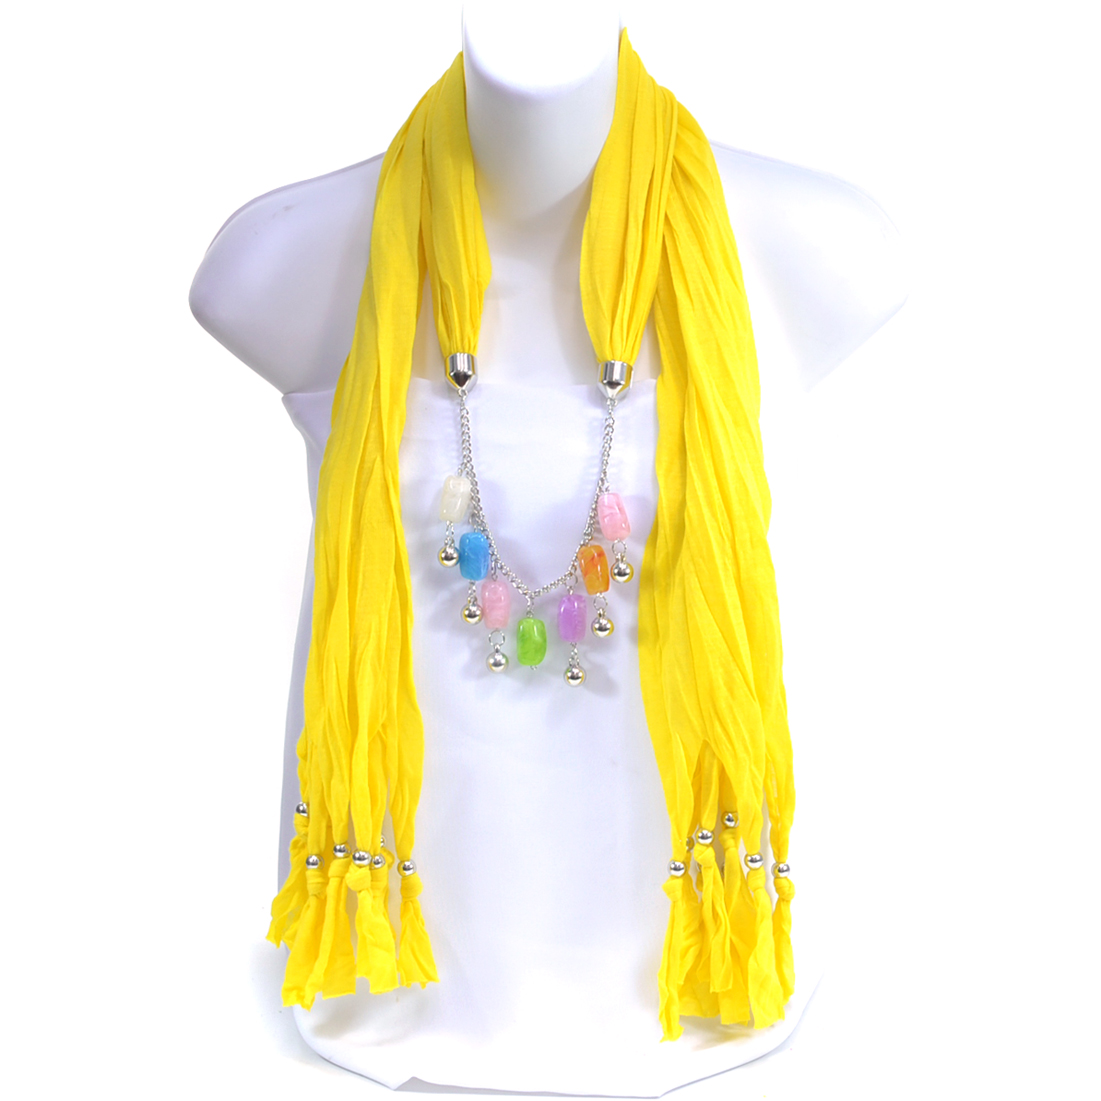 Silver Beads and Pendant Necklace Scarf with Beaded Fringe